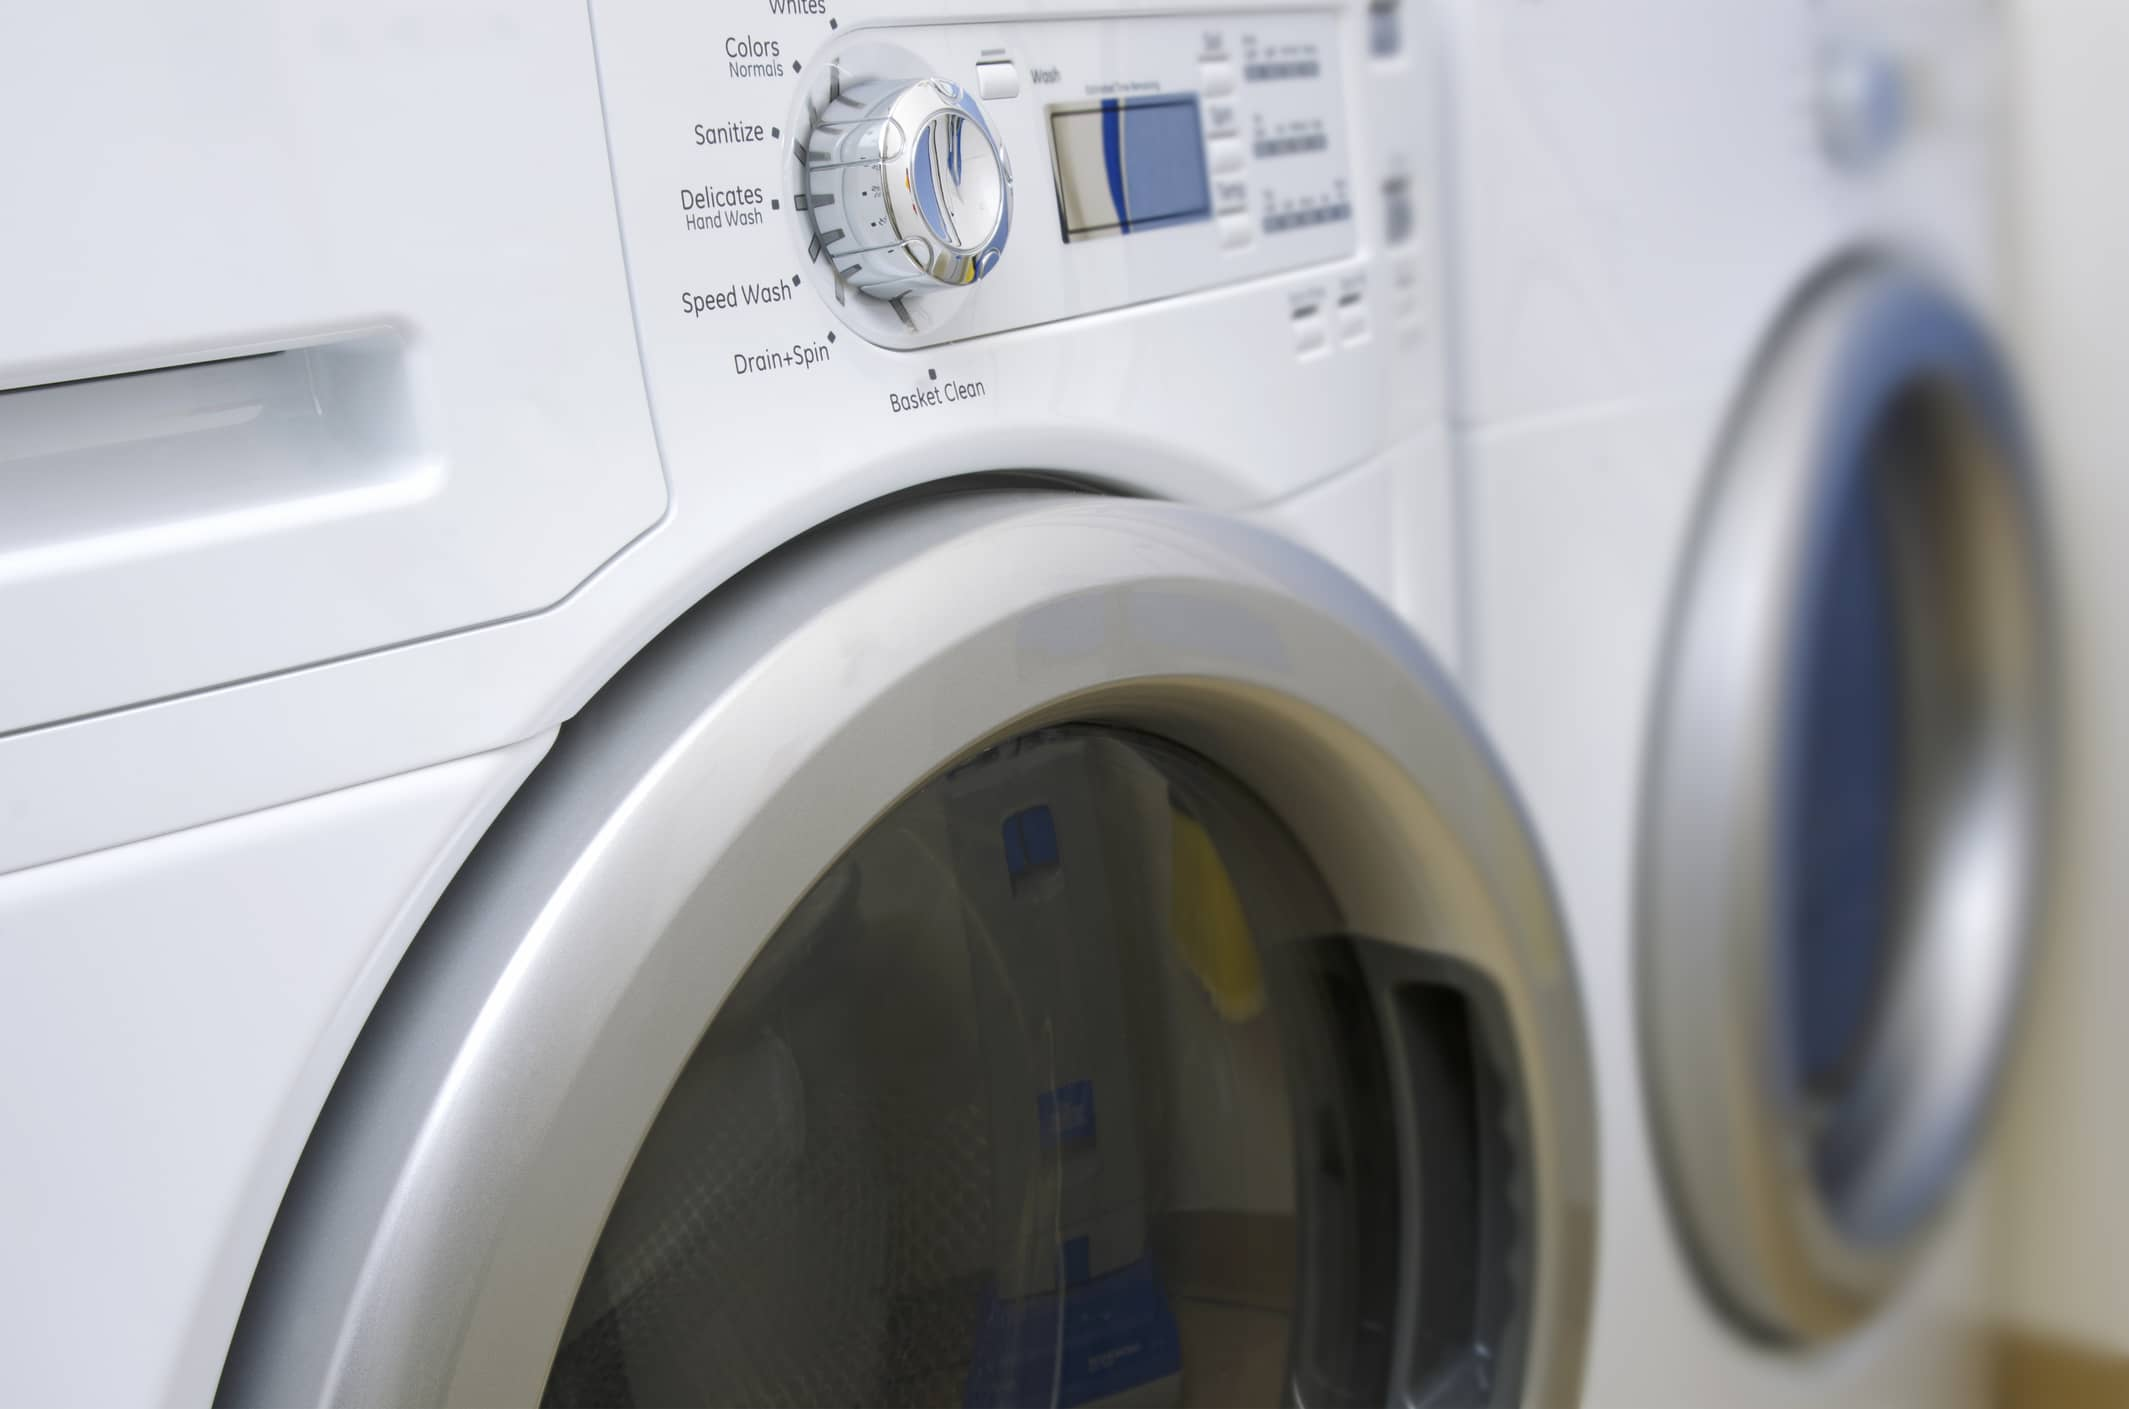 Washer-and-Dryer-478389279_2130x1410